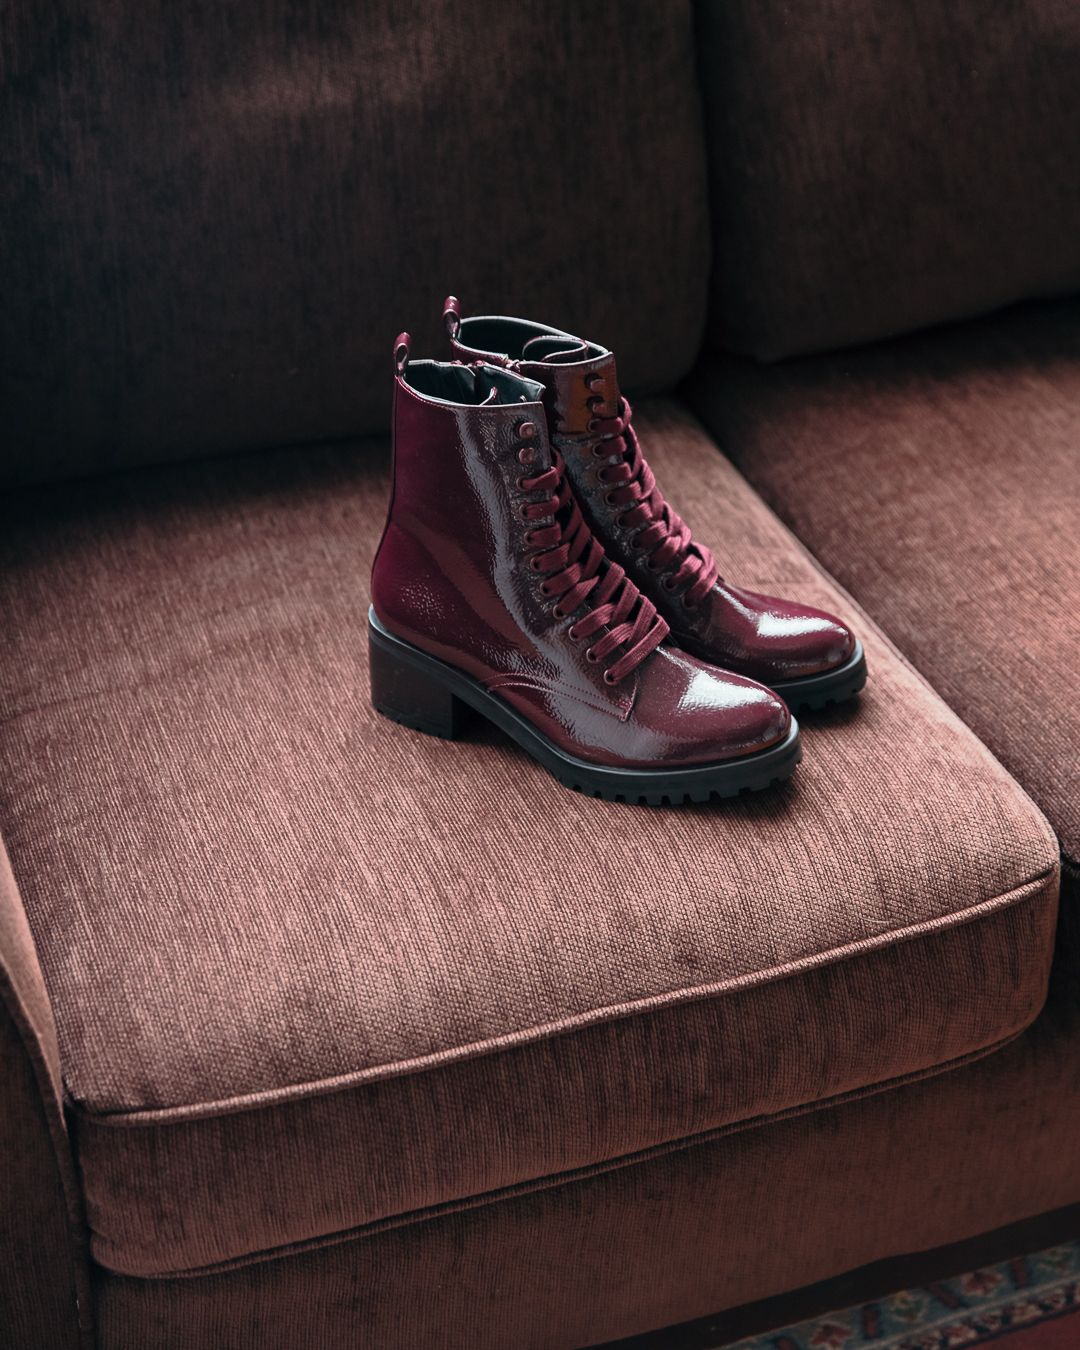 28eb4403a3 These boots are made for walking. Shop fun boots now in-store ...